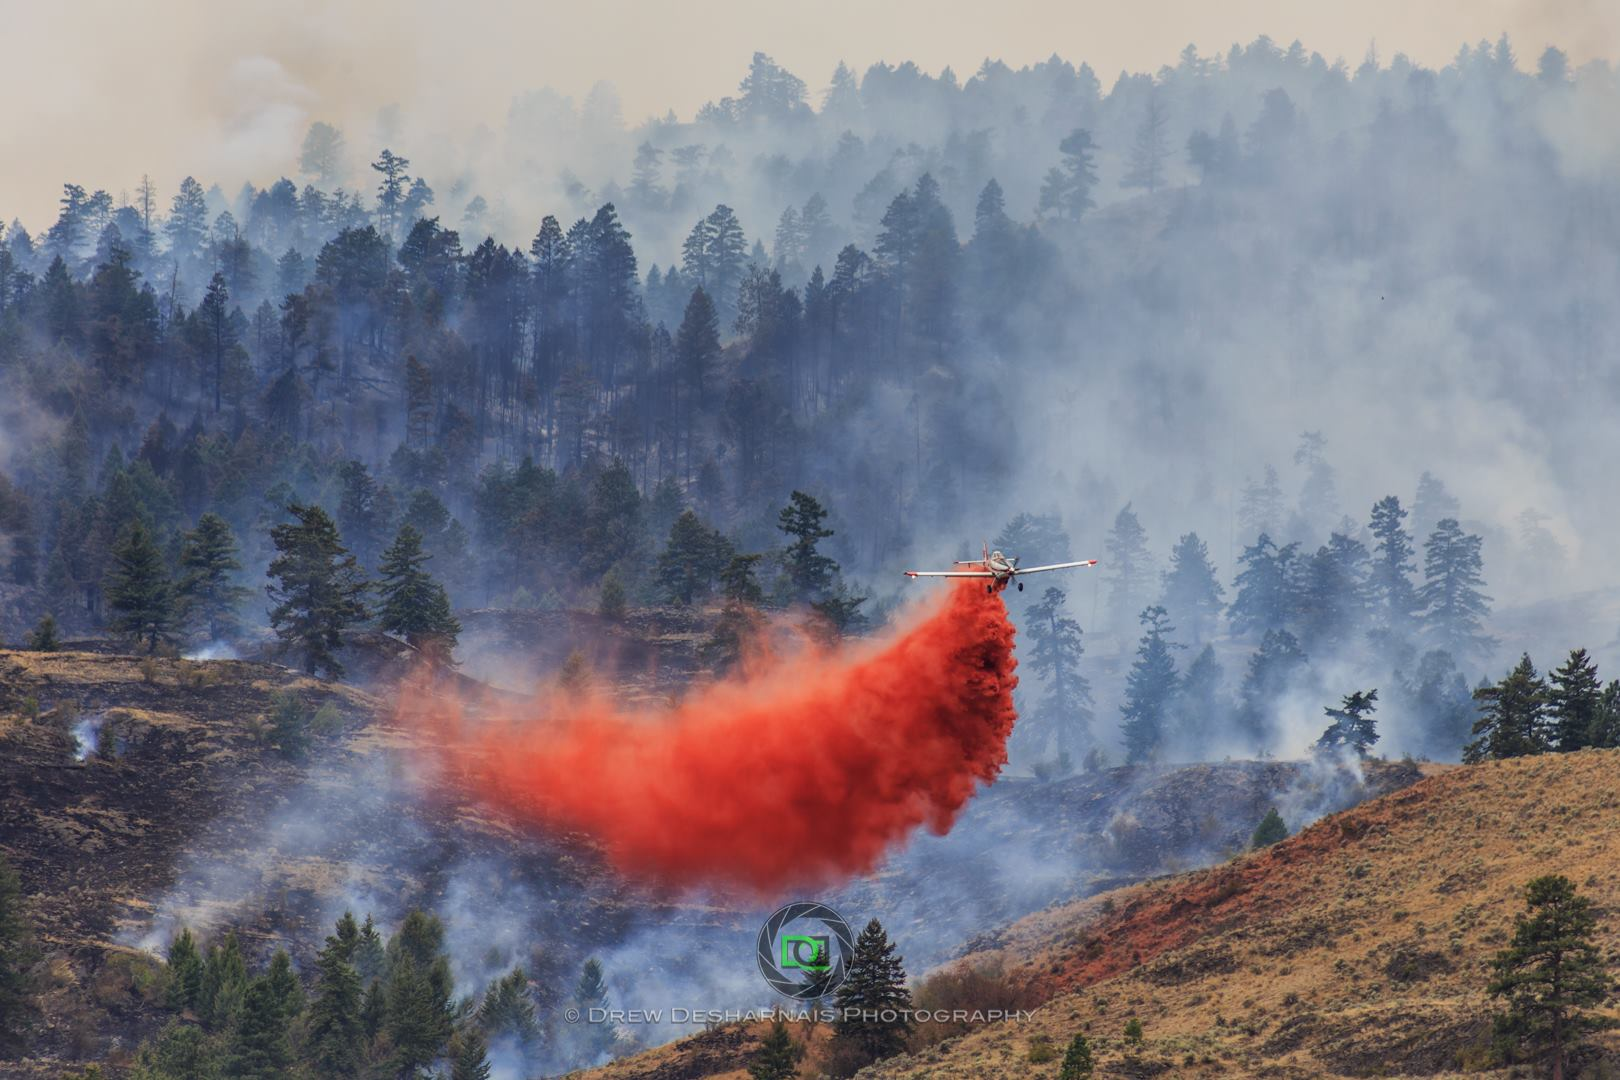 BC WILDFIRE SITUATION IMPROVING